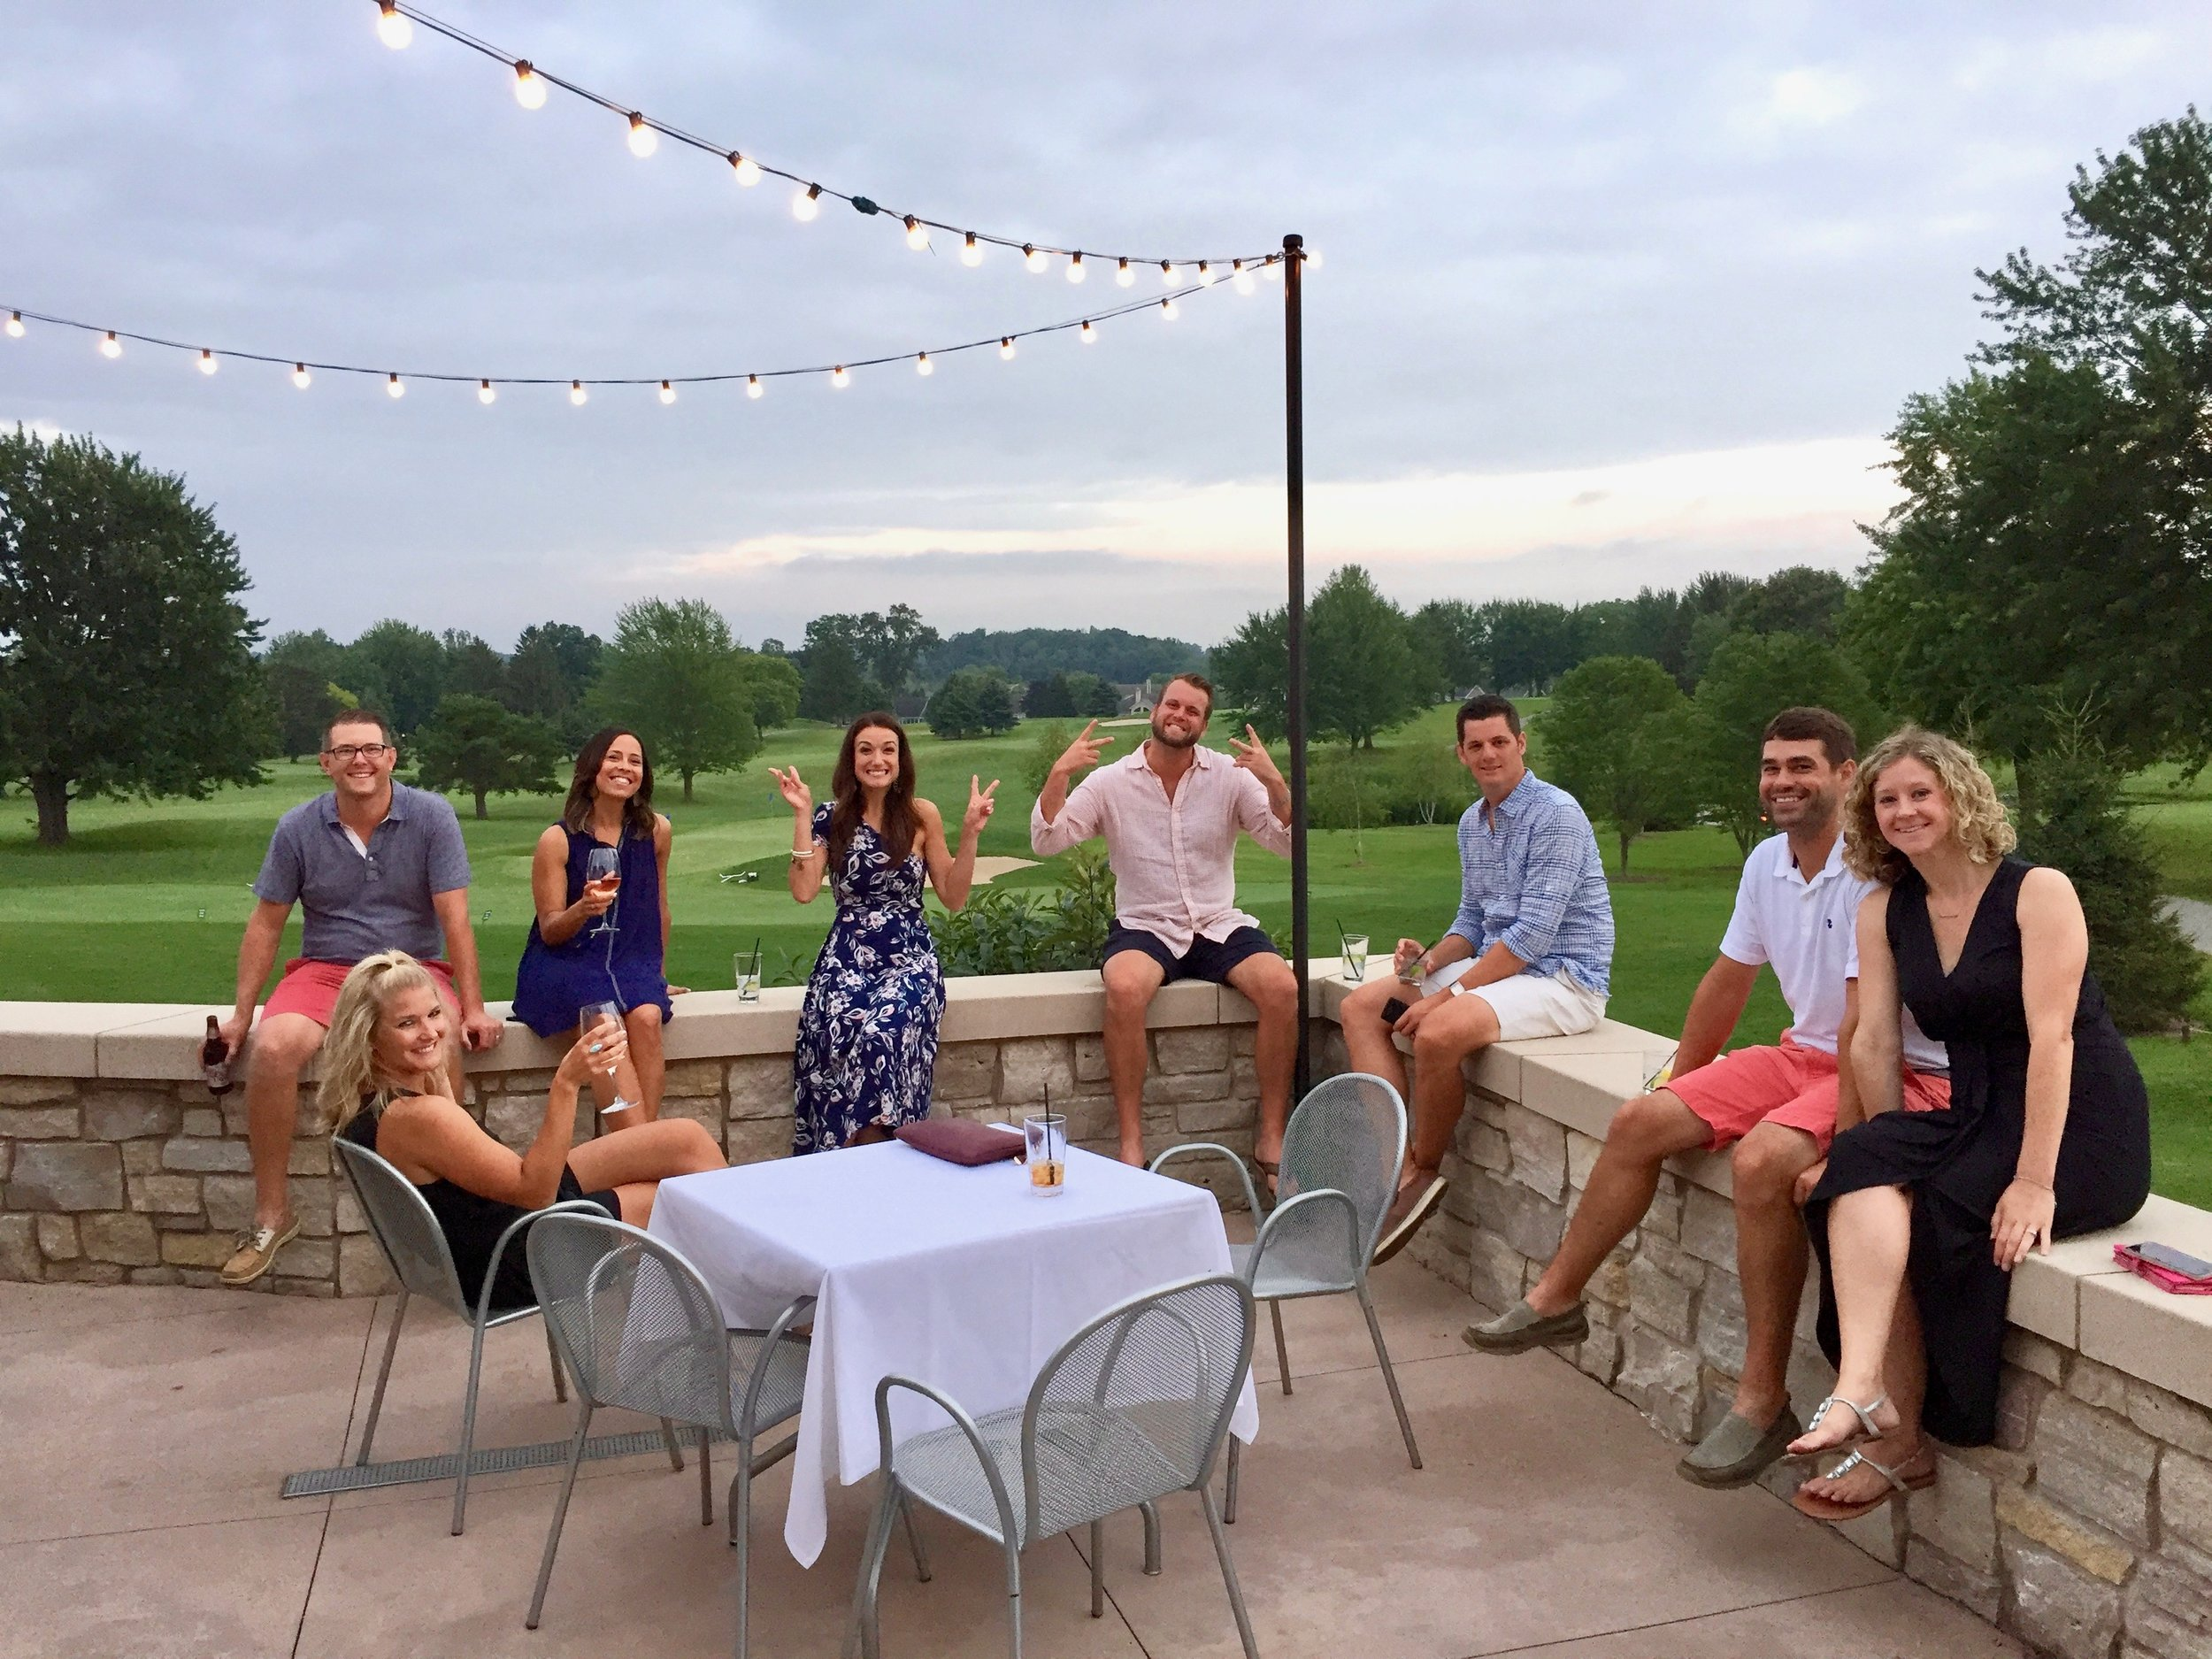 Some of our fine friends enjoying the patio at Member Member Event.